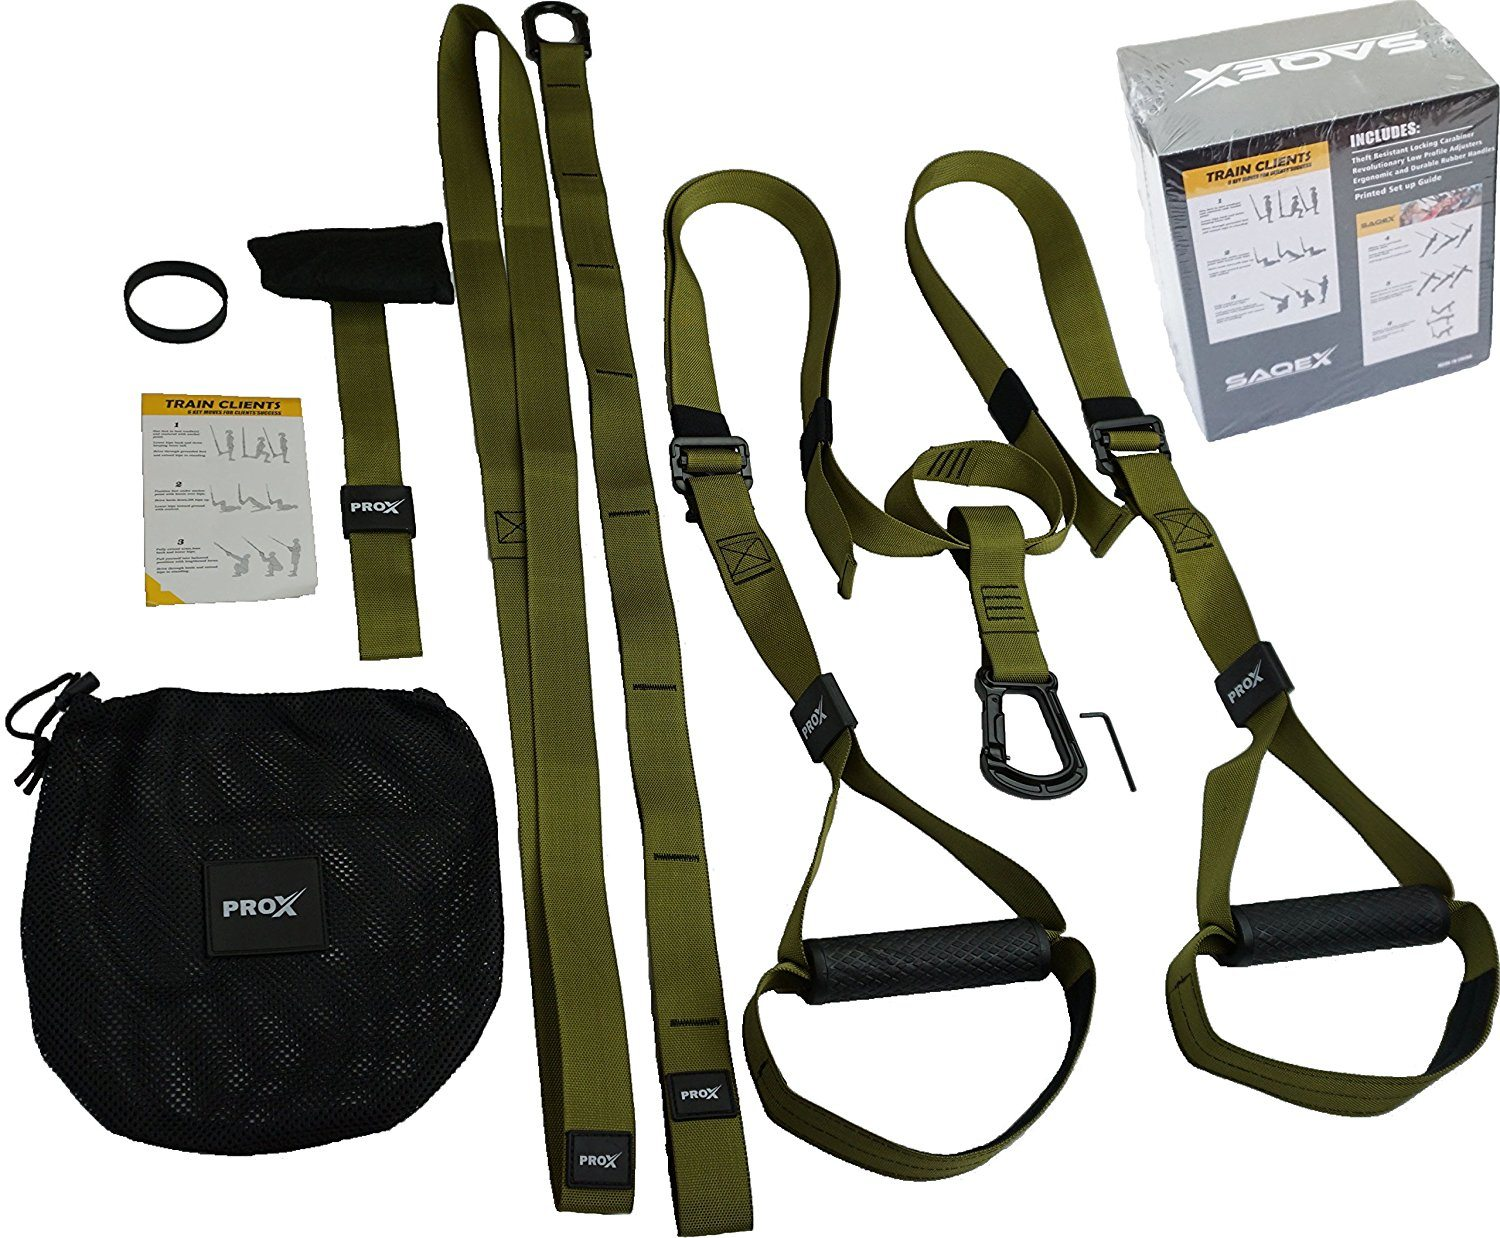 Small Space Home Fitness Equipment For Your Apartment | Body Weight Resistance Straps & Anchors